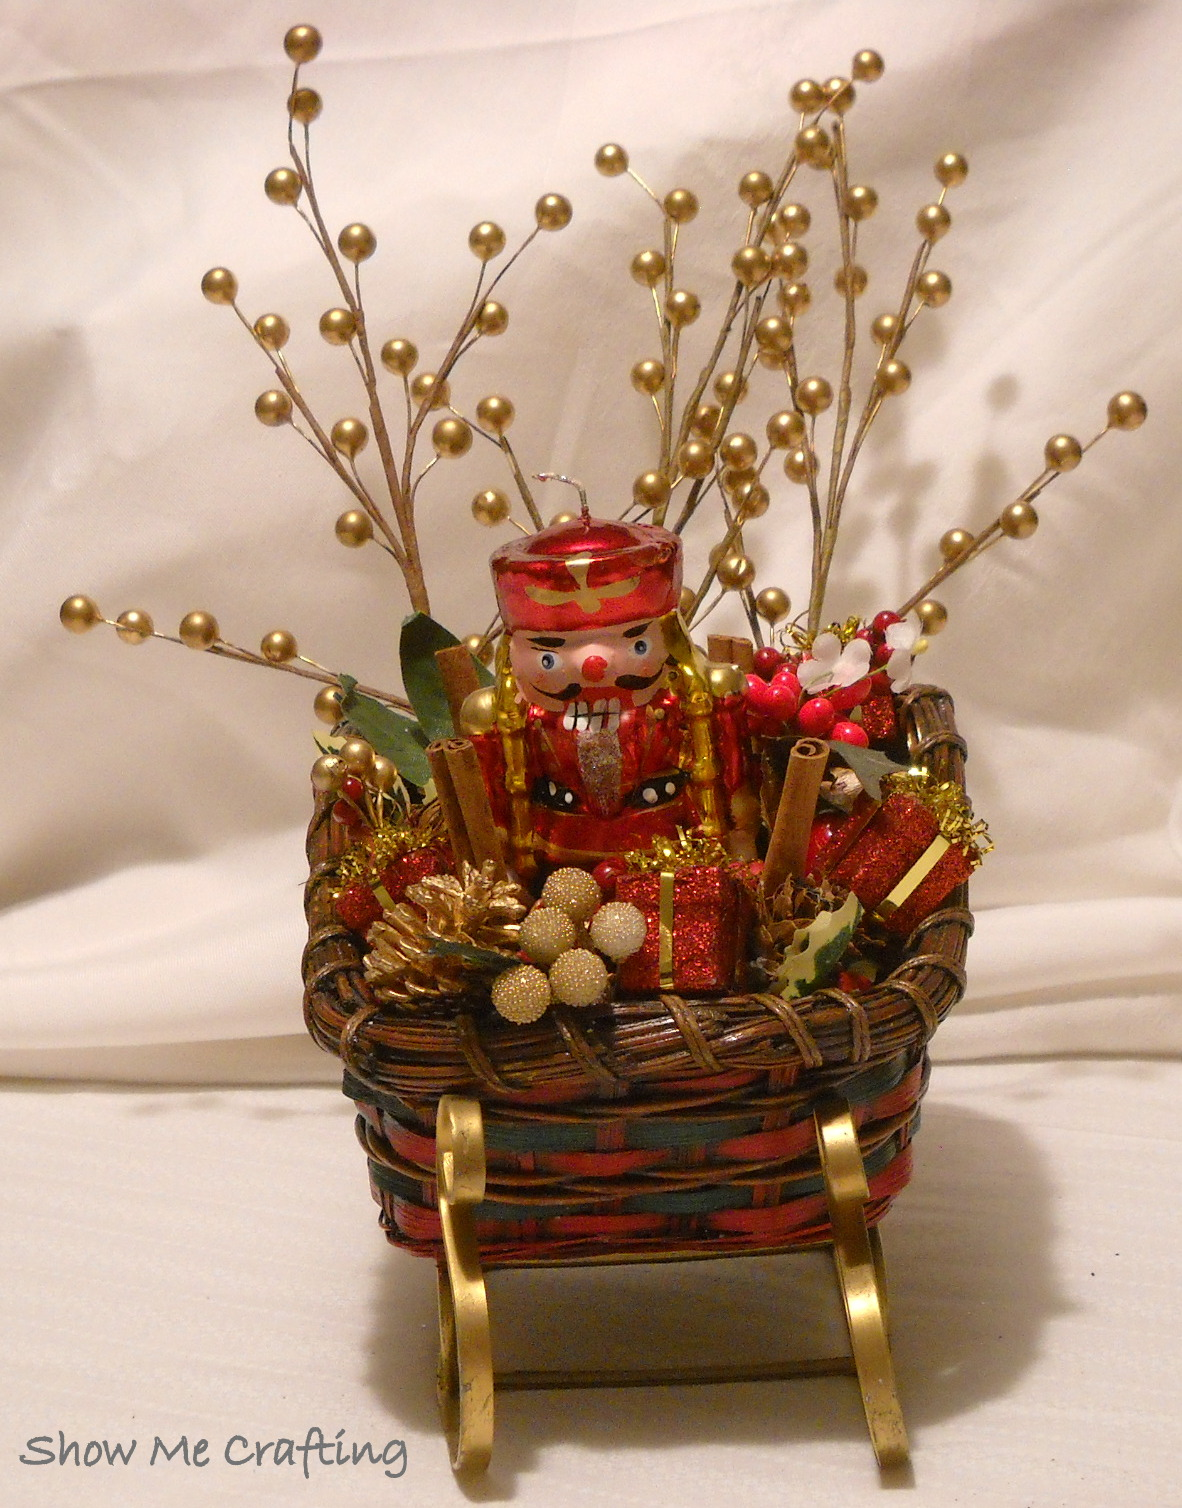 Show me crafting christmas sleighs Small christmas centerpieces